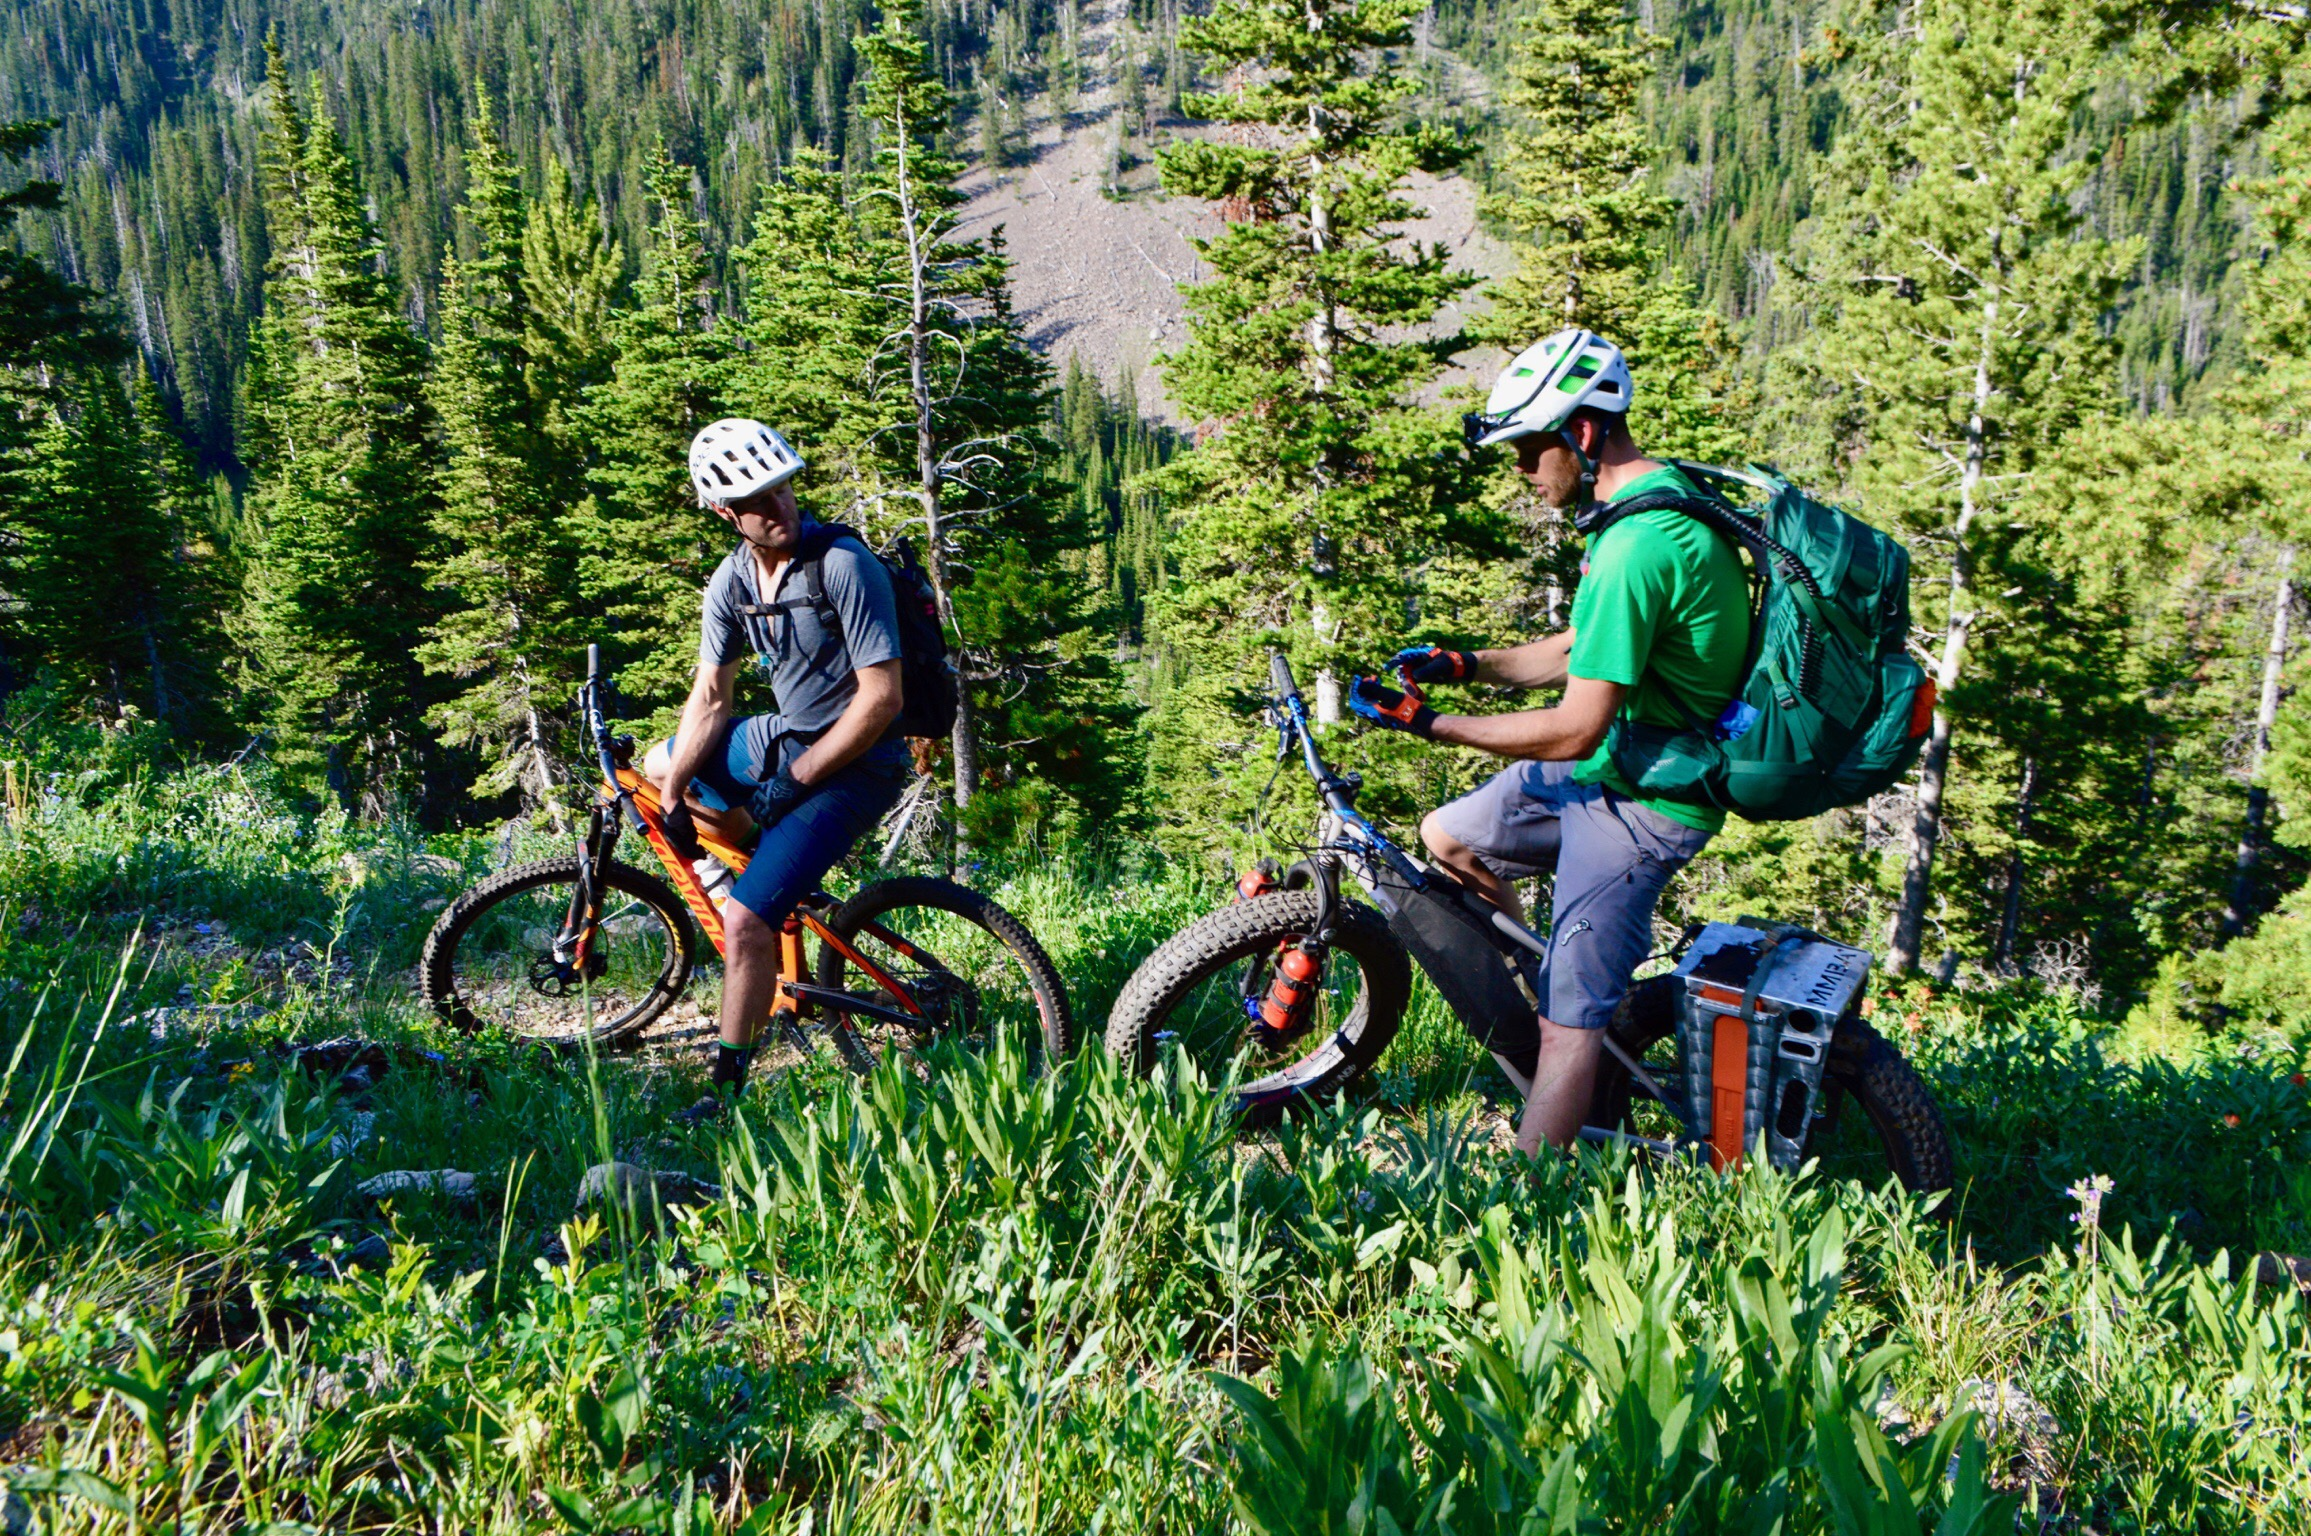 Lionhead - This region of the Henry's Mountains along the border of Montana and Idaho is one of the highest risks for trail loss for cyclists in the next 5 years. With tens of miles of trail currently open to cyclists, and a unique mix of sustainable, high-altitude singletrack in a remote backcountry setting, the Lionhead represents some of the last backcountry trail in existence for cyclists in Montana. This gem is regularly maintained by SWMMBA, where we donate hundreds of hours of trail maintenance yearly to the upkeep of this unique system.